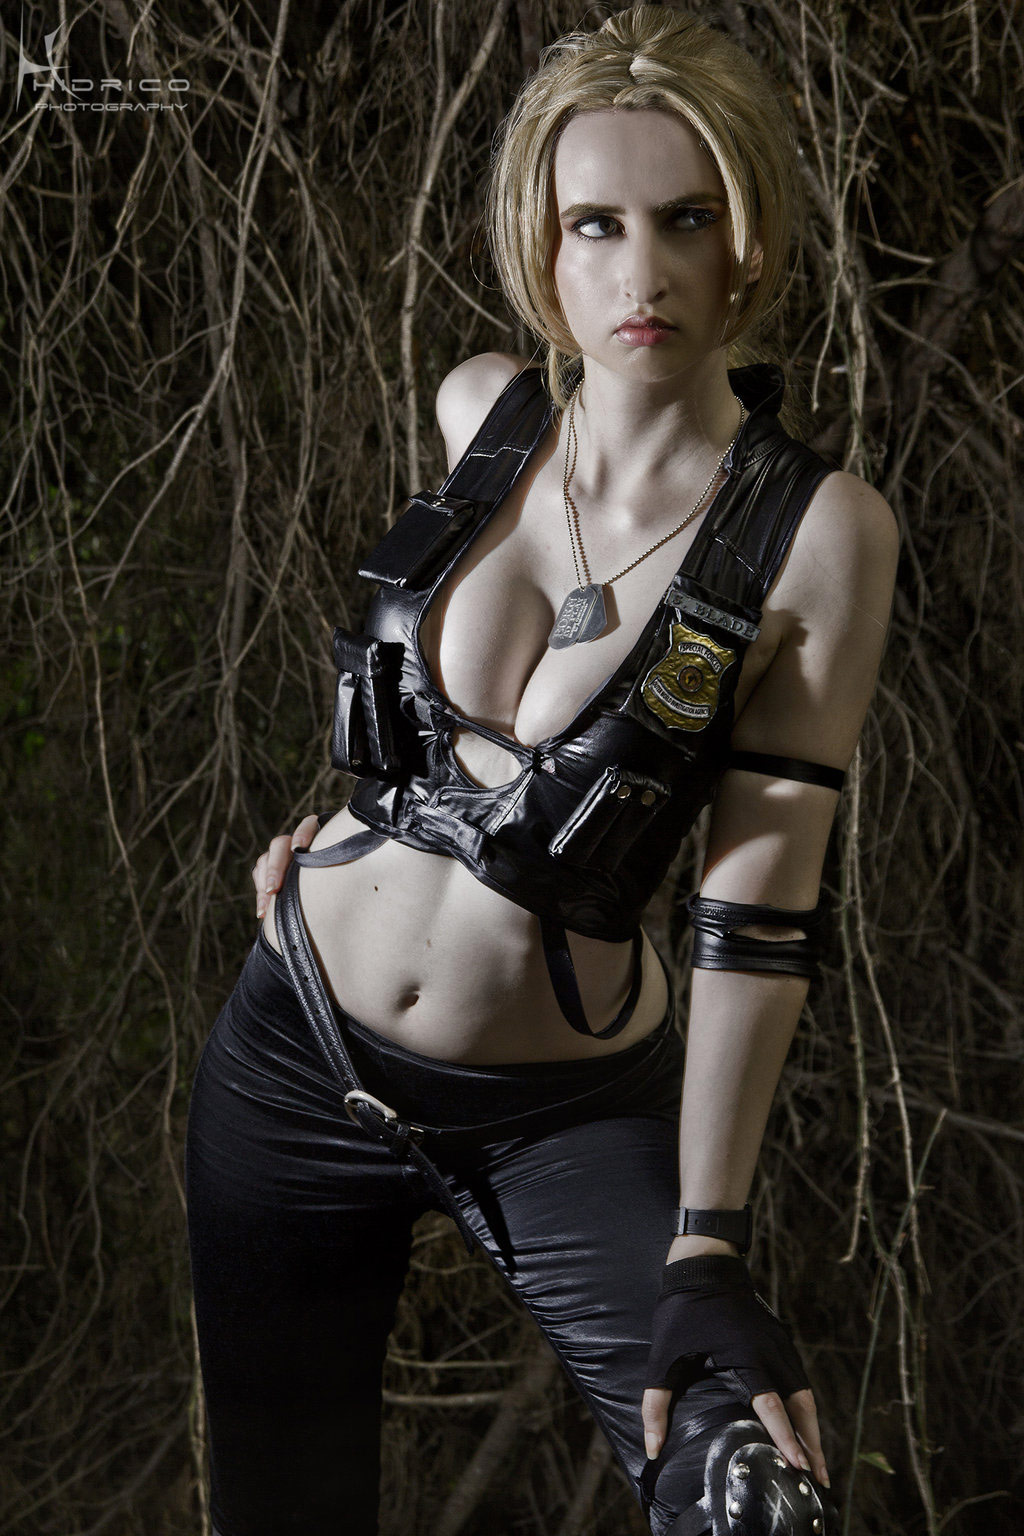 Hidrico's fighting game related cosplay photos #1